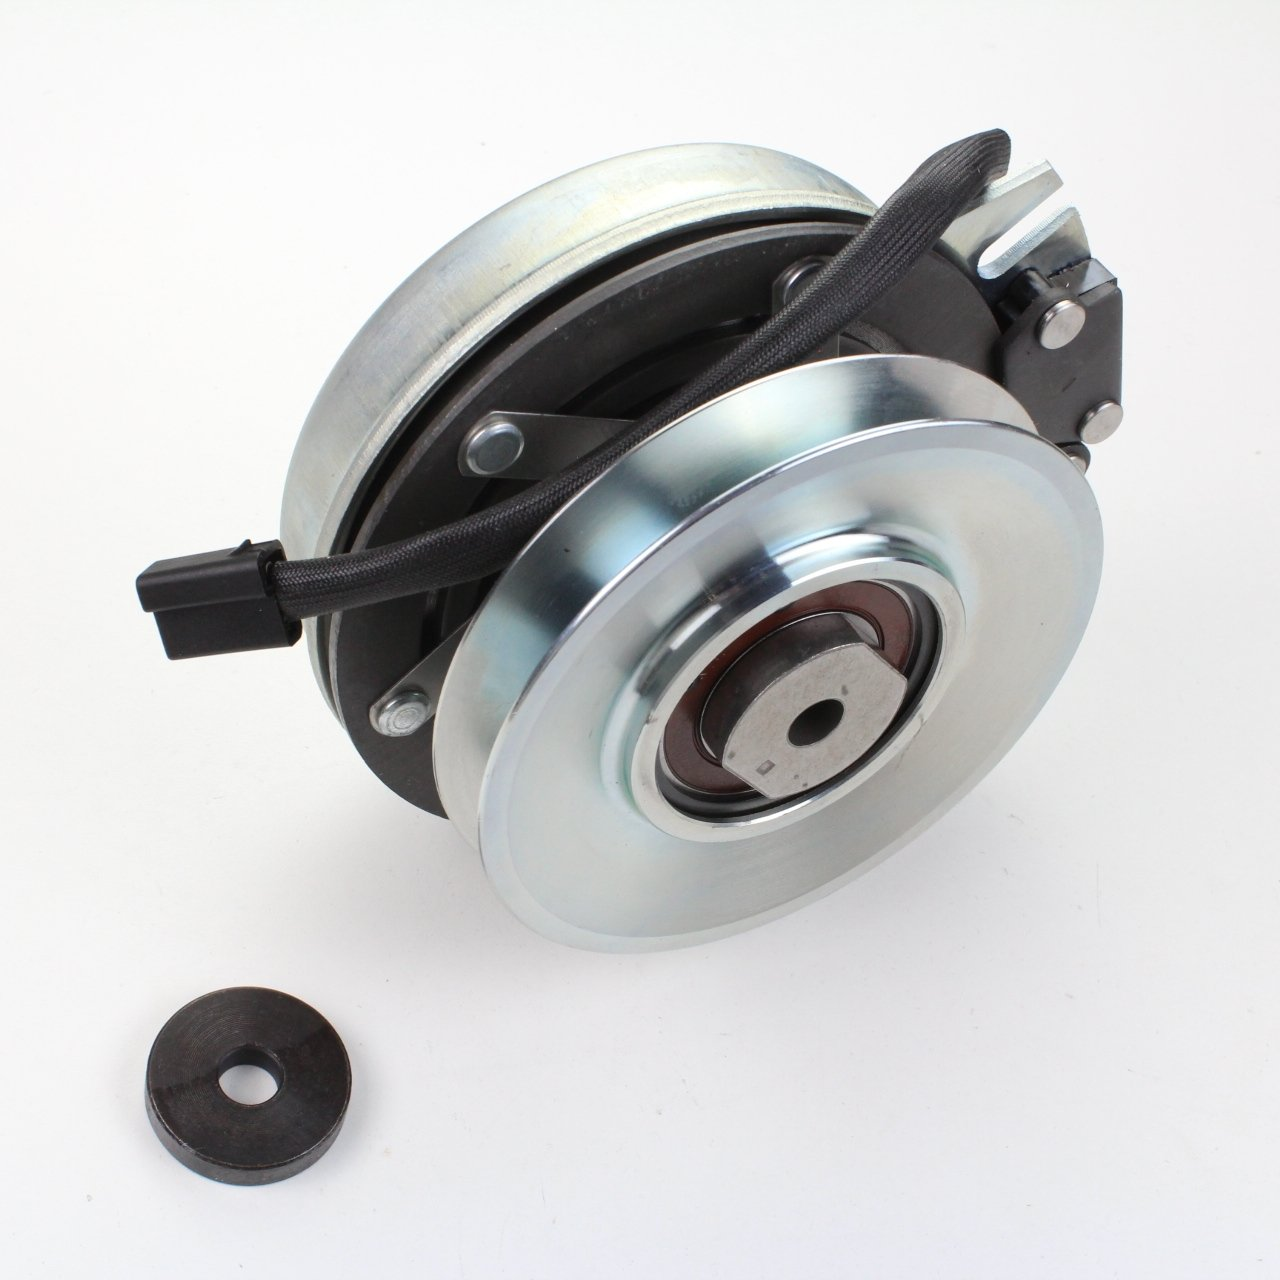 Amazon.com : NICHE Electric PTO Clutch for Warner John Deere ...